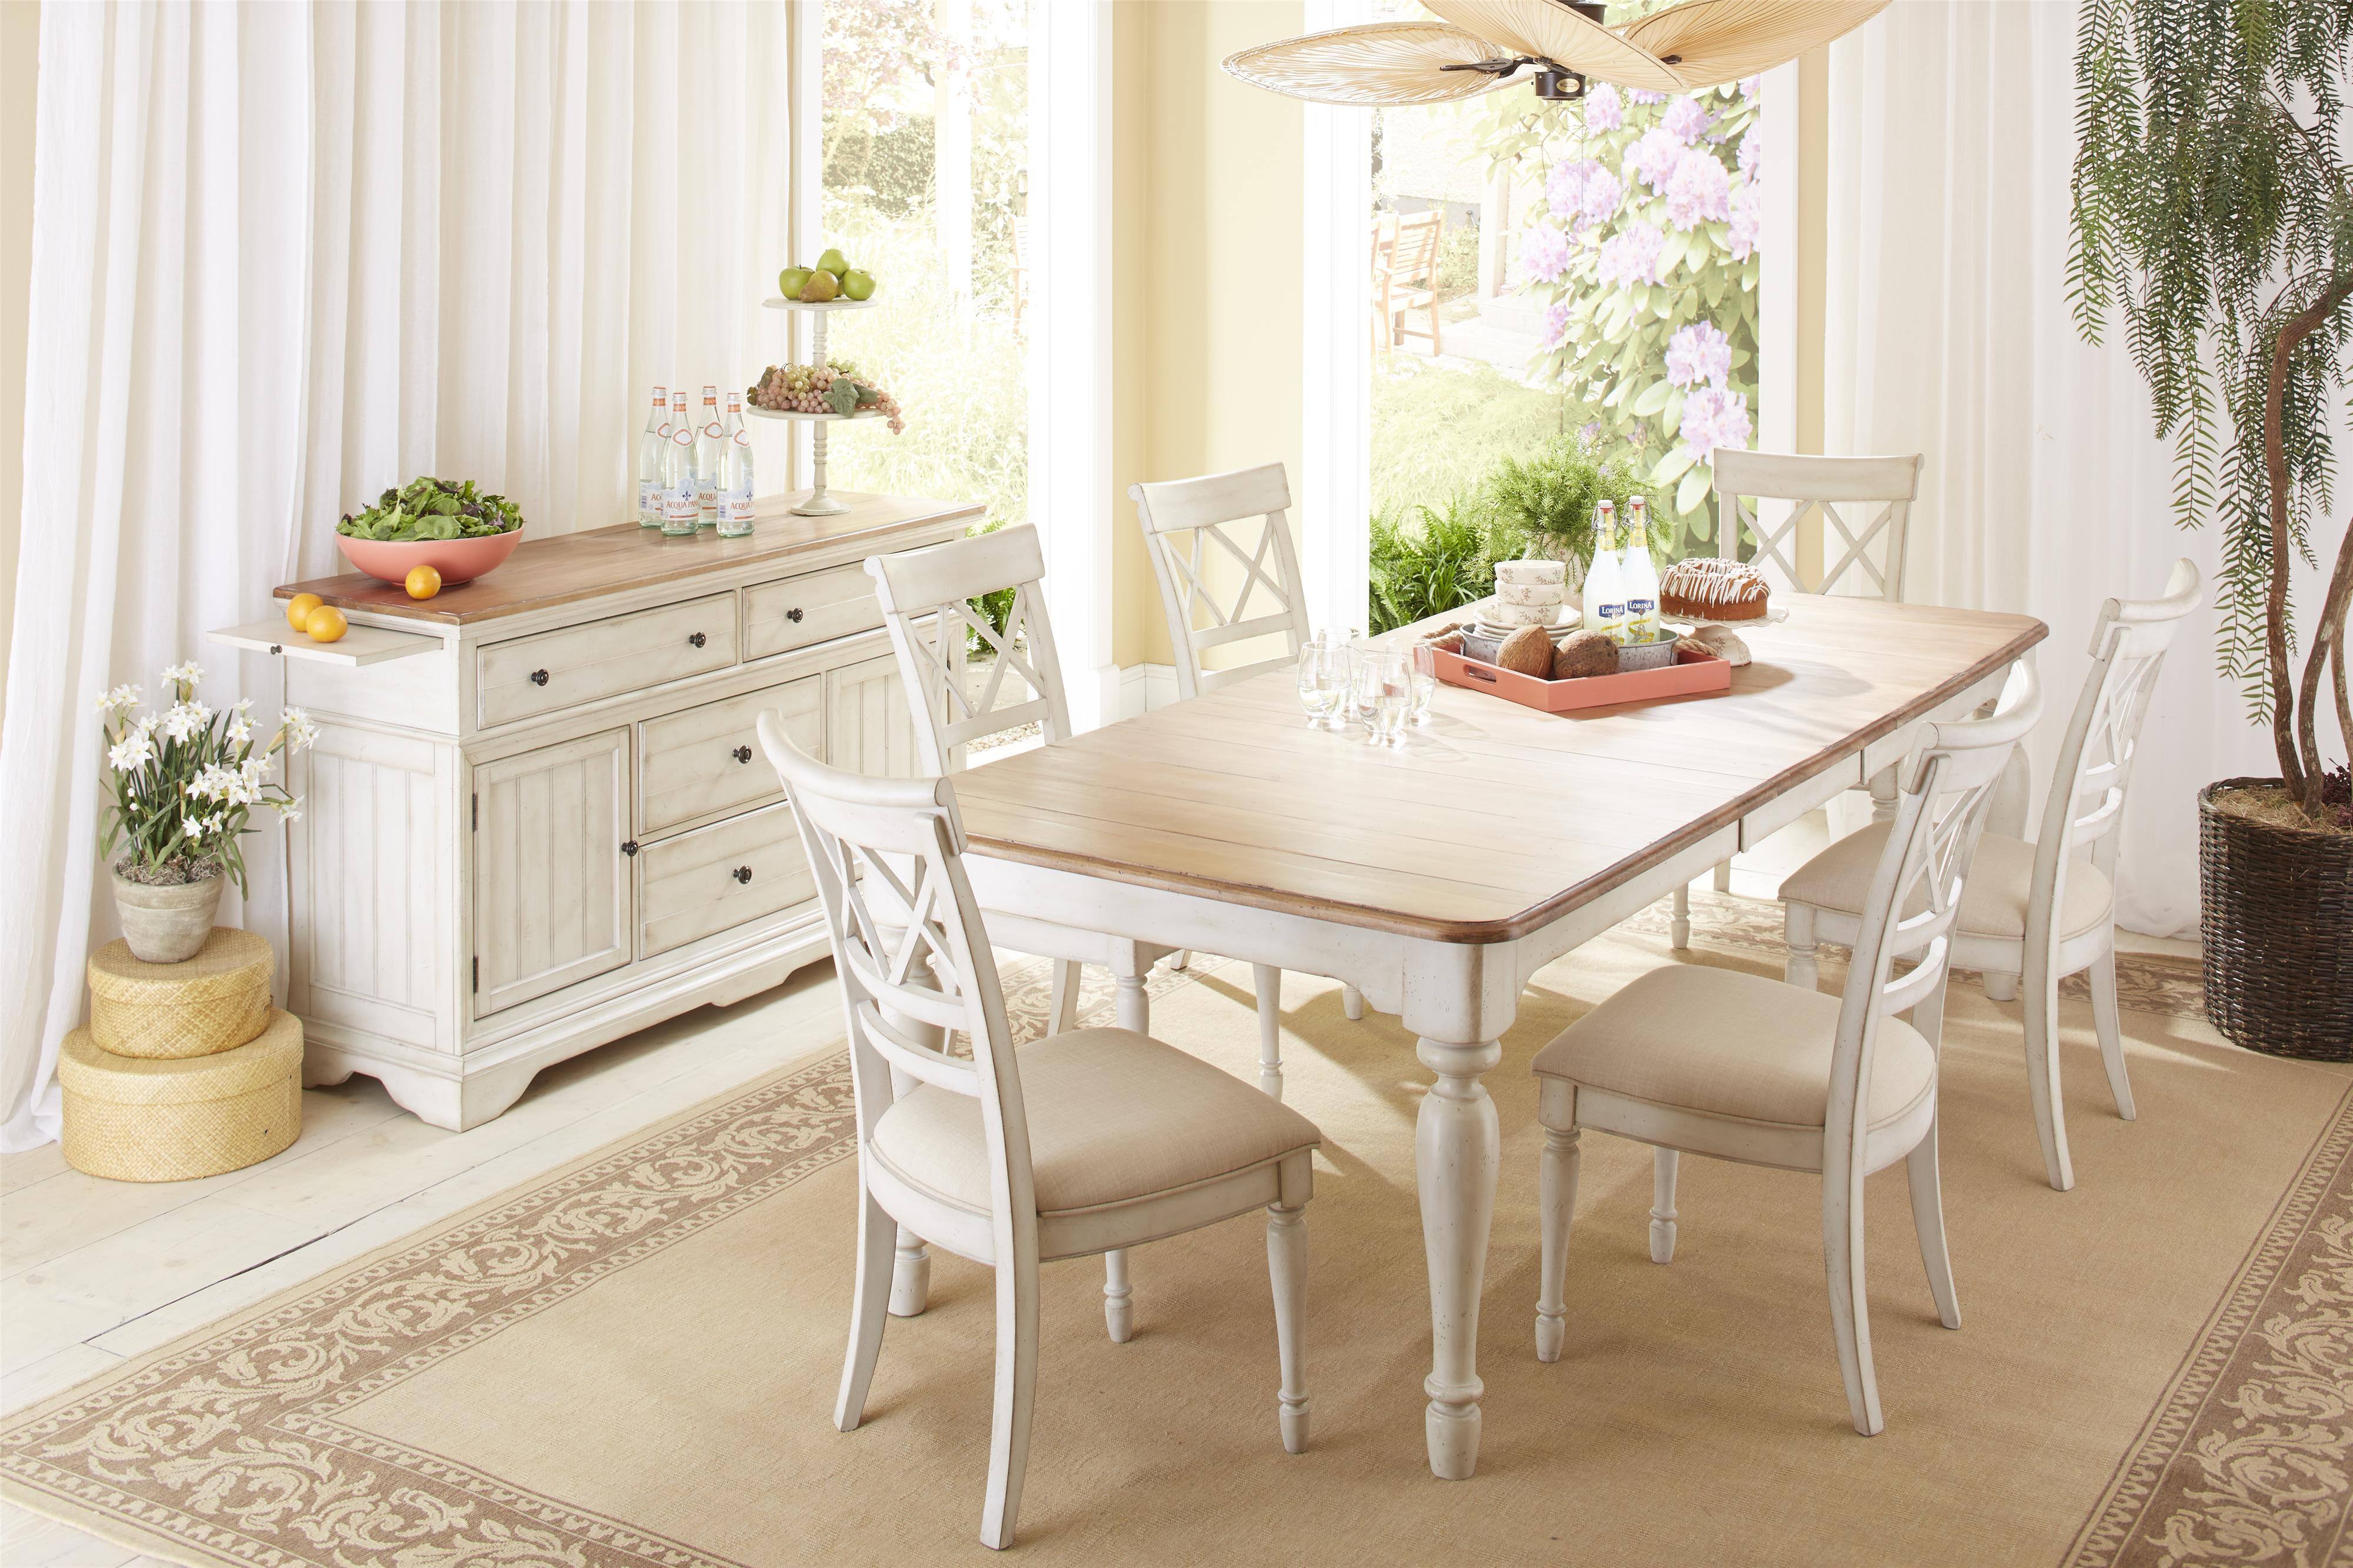 america gray rug furniture round rugs from kerala new of unique download besette area jute dining oval cottage beautiful image and kitchen table